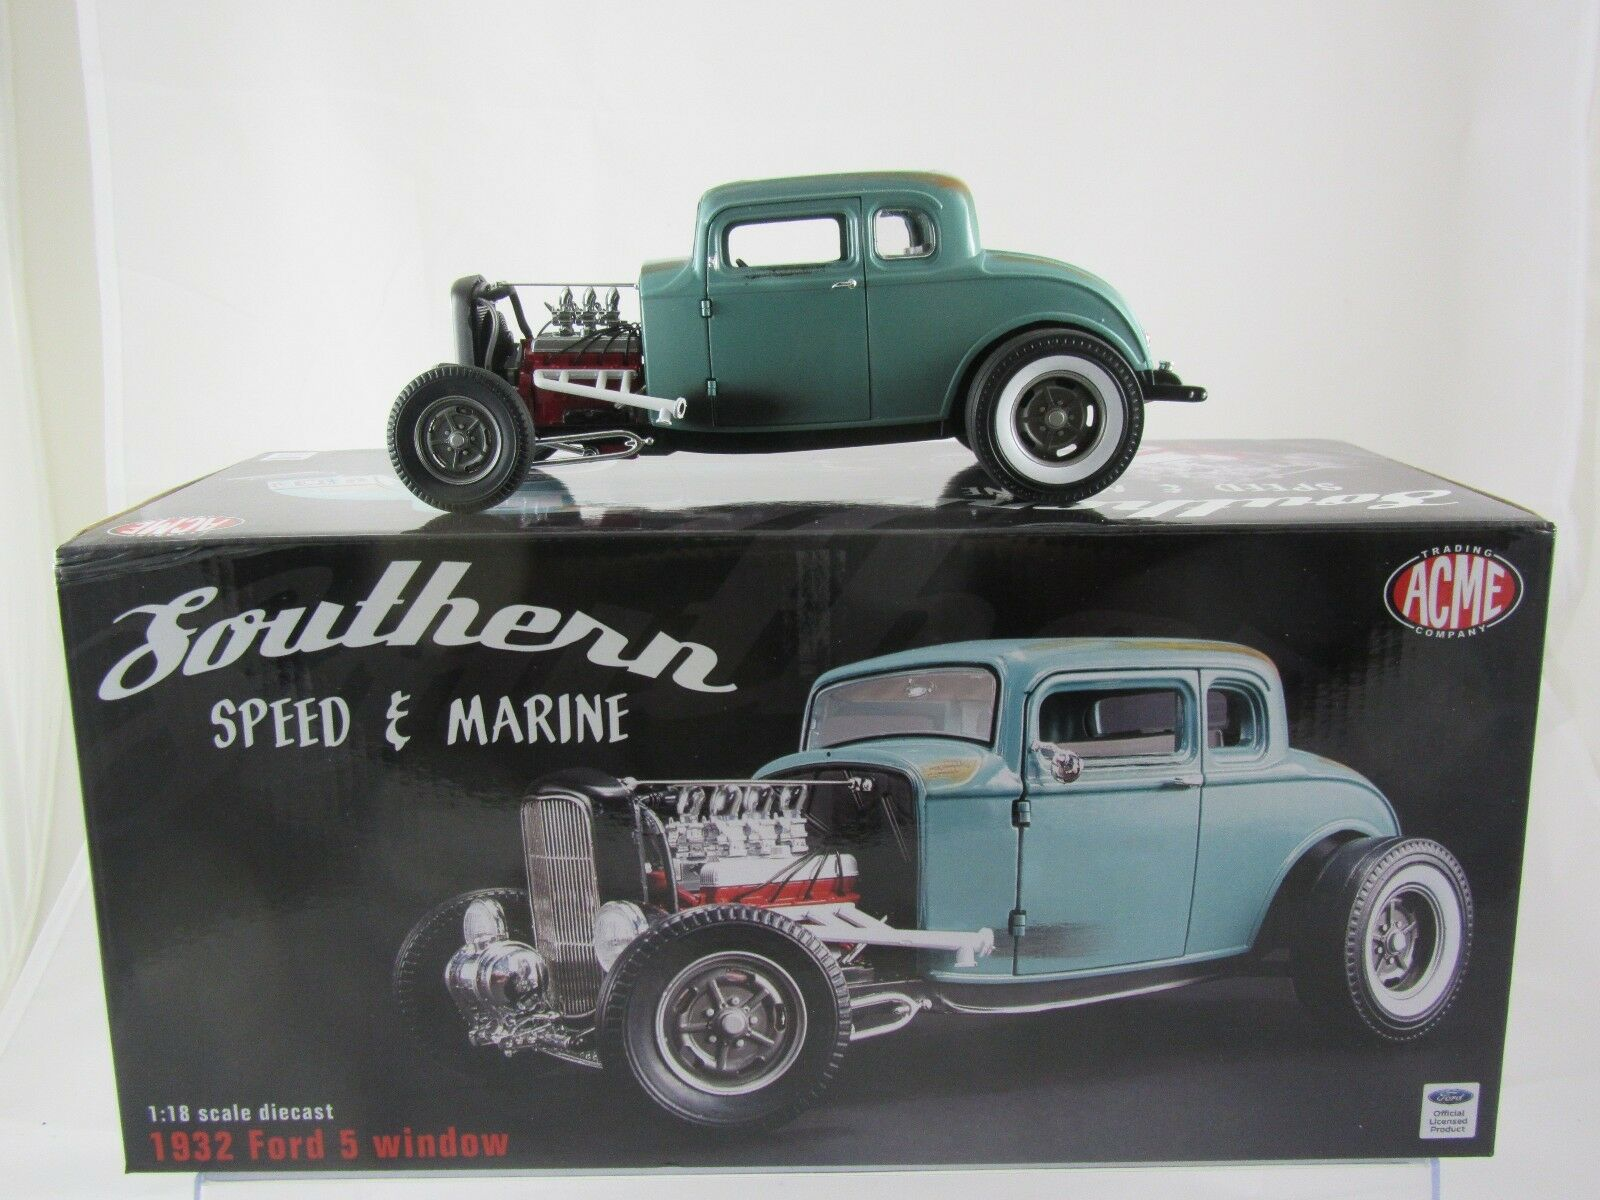 Acme 1932 Ford 5 Window - Southern Speed & Marine Rat Rod A1805012